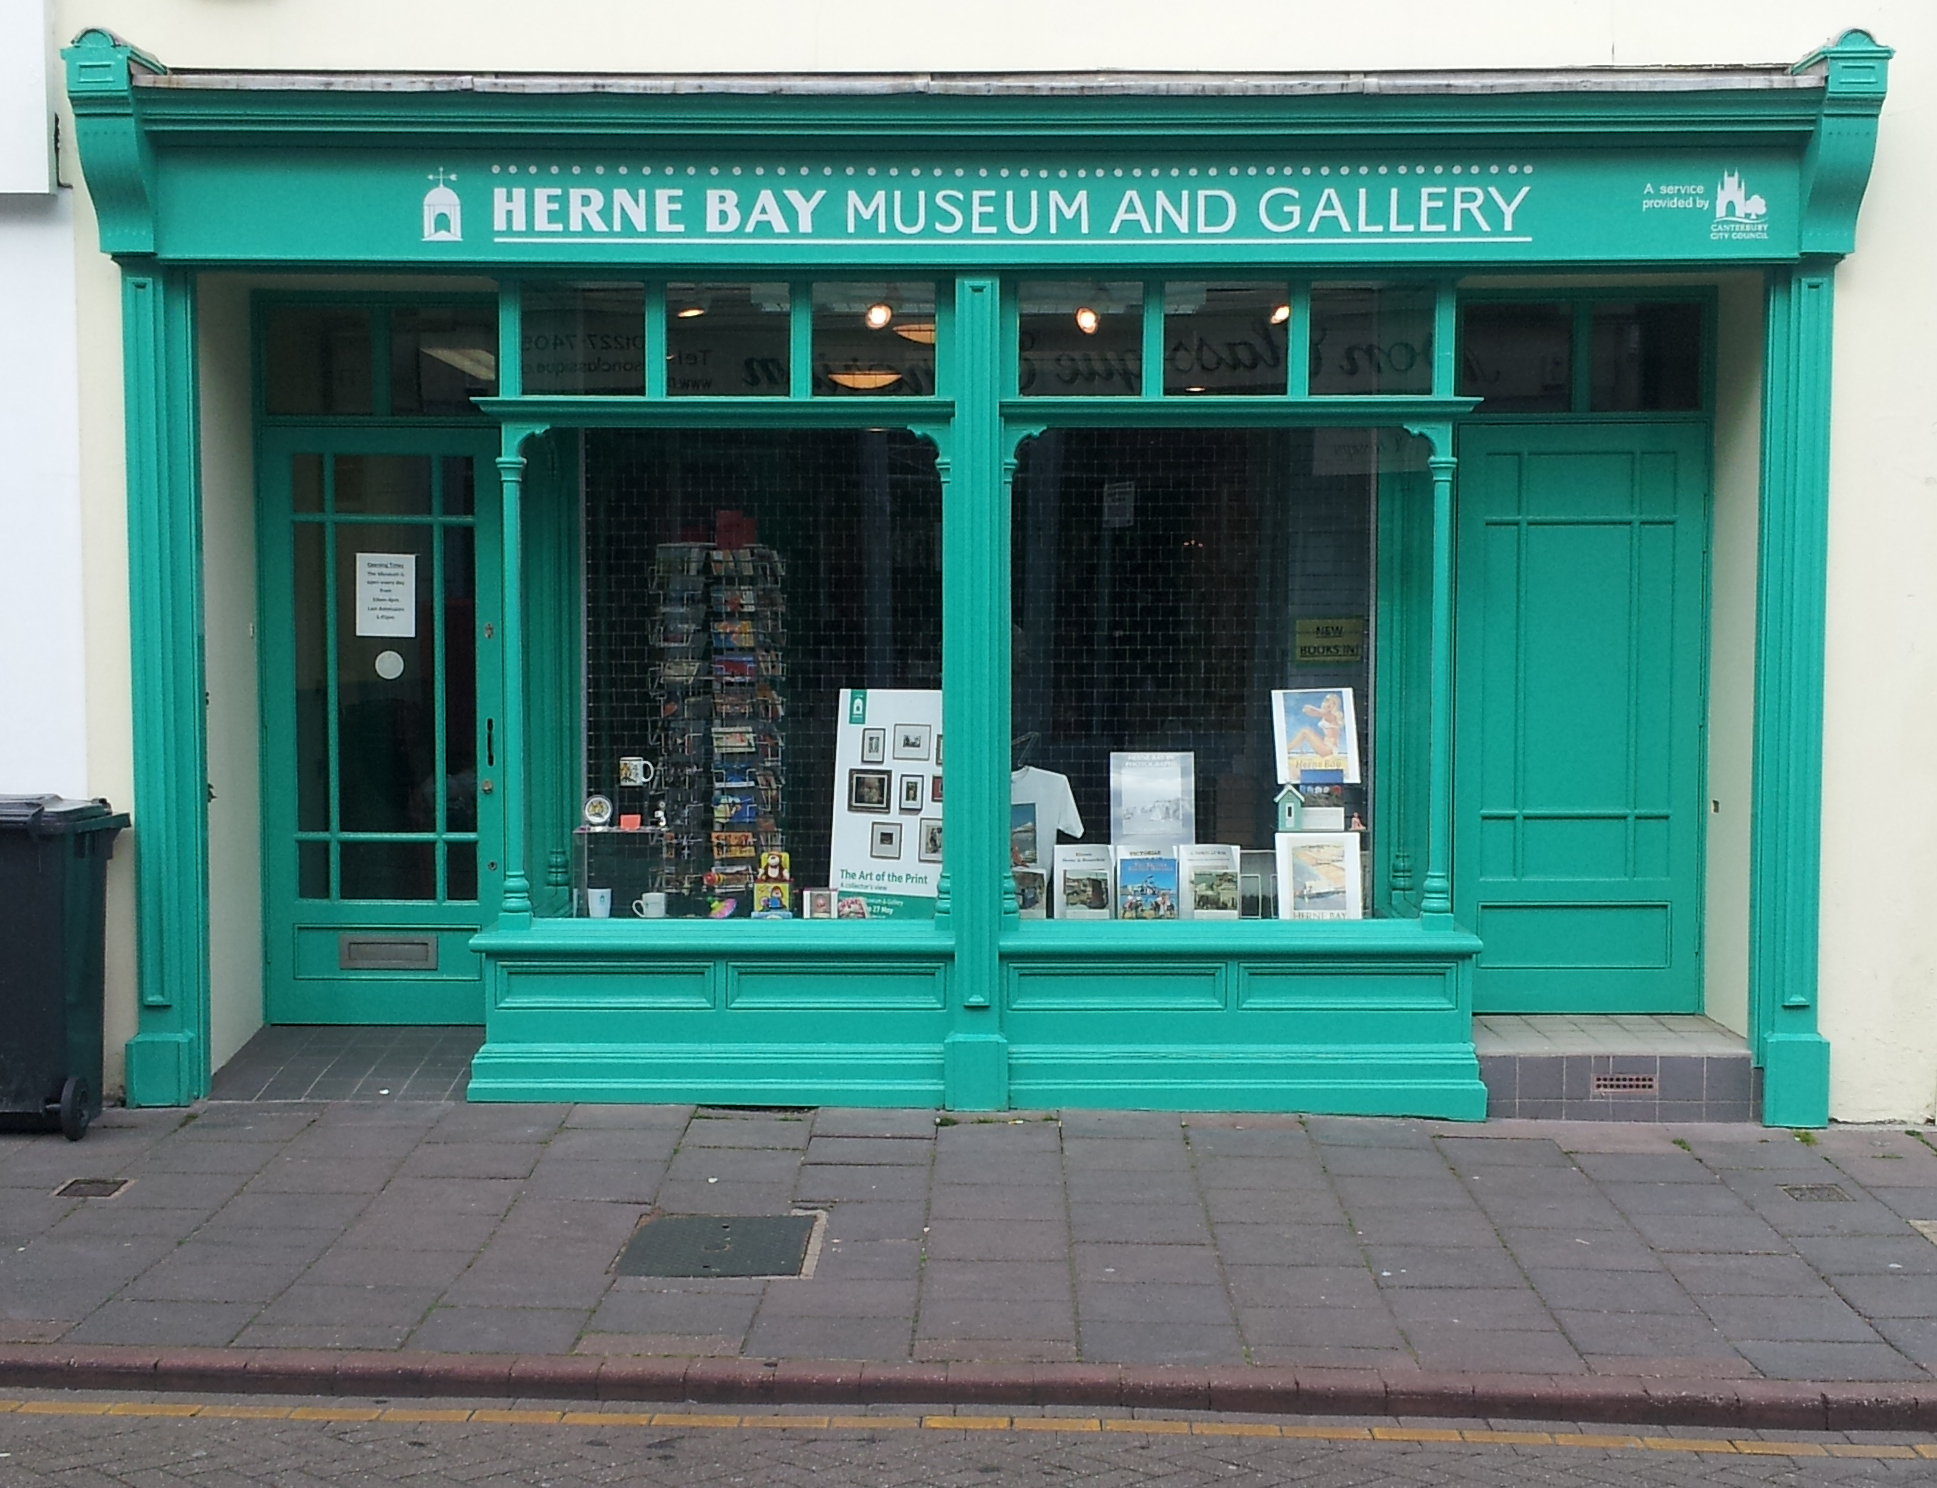 Herne Bay Museum & Gallery  8 William Street, Herne Bay, Kent CT6 5EJ